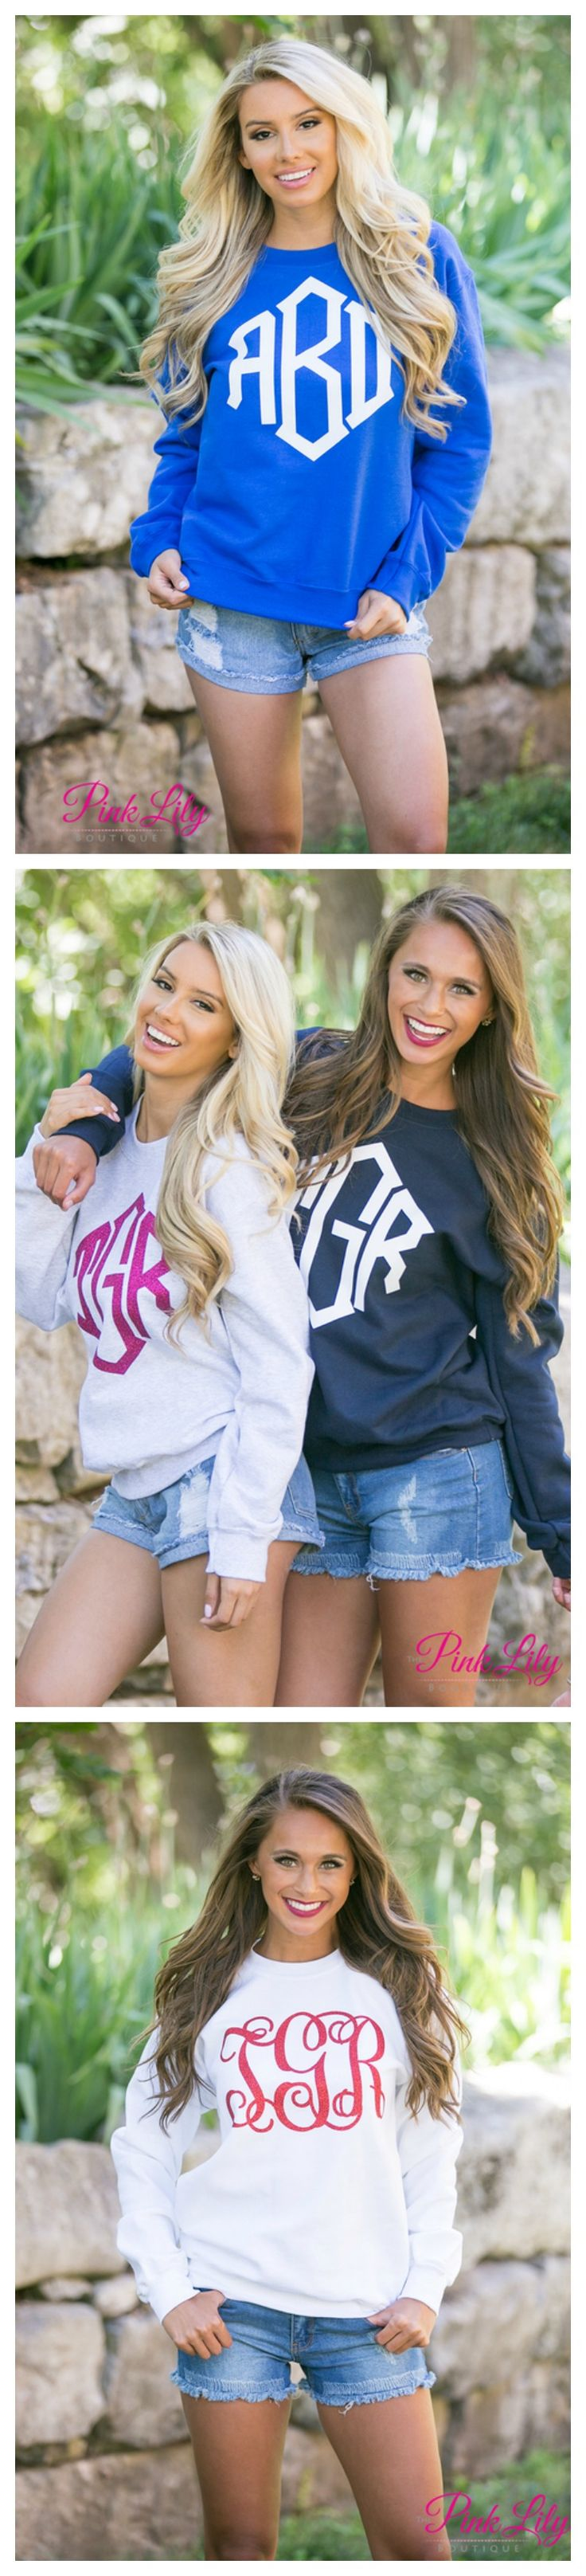 These comfortable vinyl monogram sweatshirts are the perfect way to show off your monogram on a breezy spring or summer night! Whether watching Netflix on a relaxing Saturday morning or making s'mores at a bonfire, you'll look stylish and stay comfortable all day long!